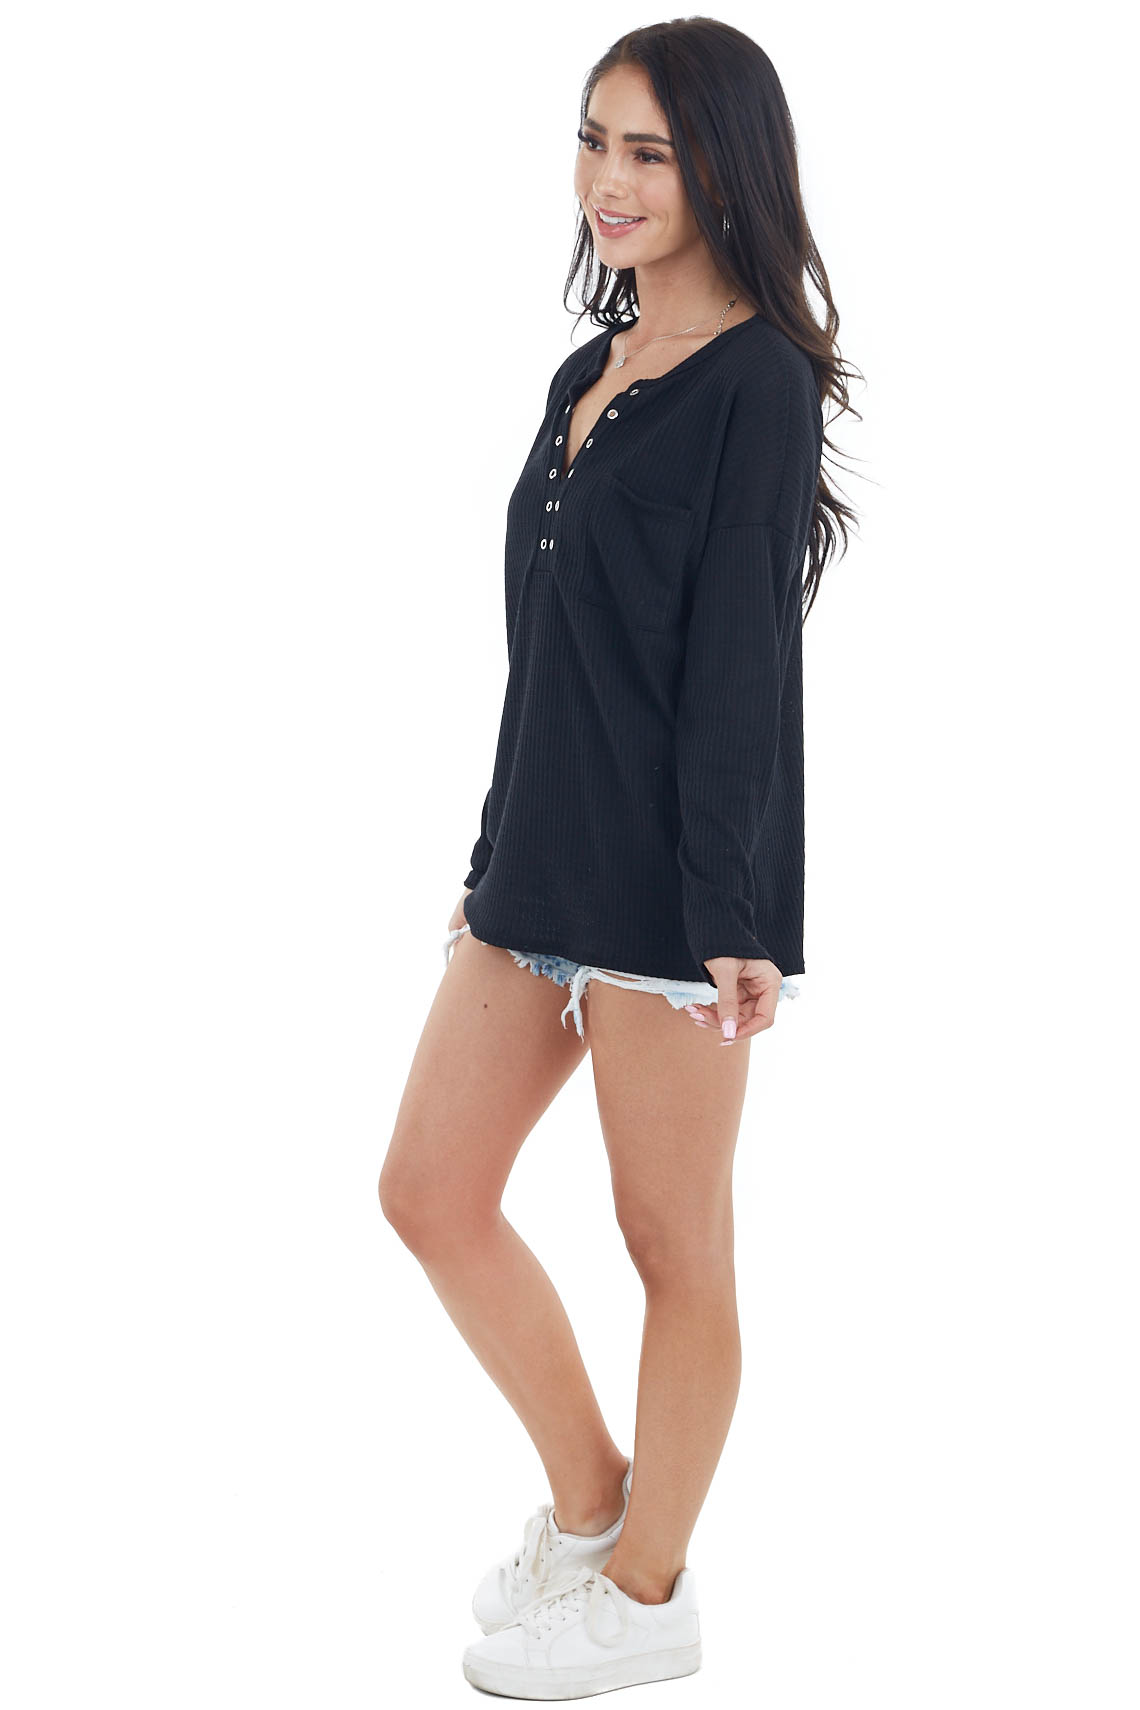 Black Long Sleeve Waffle Knit Top with Silver Eyelet Detail